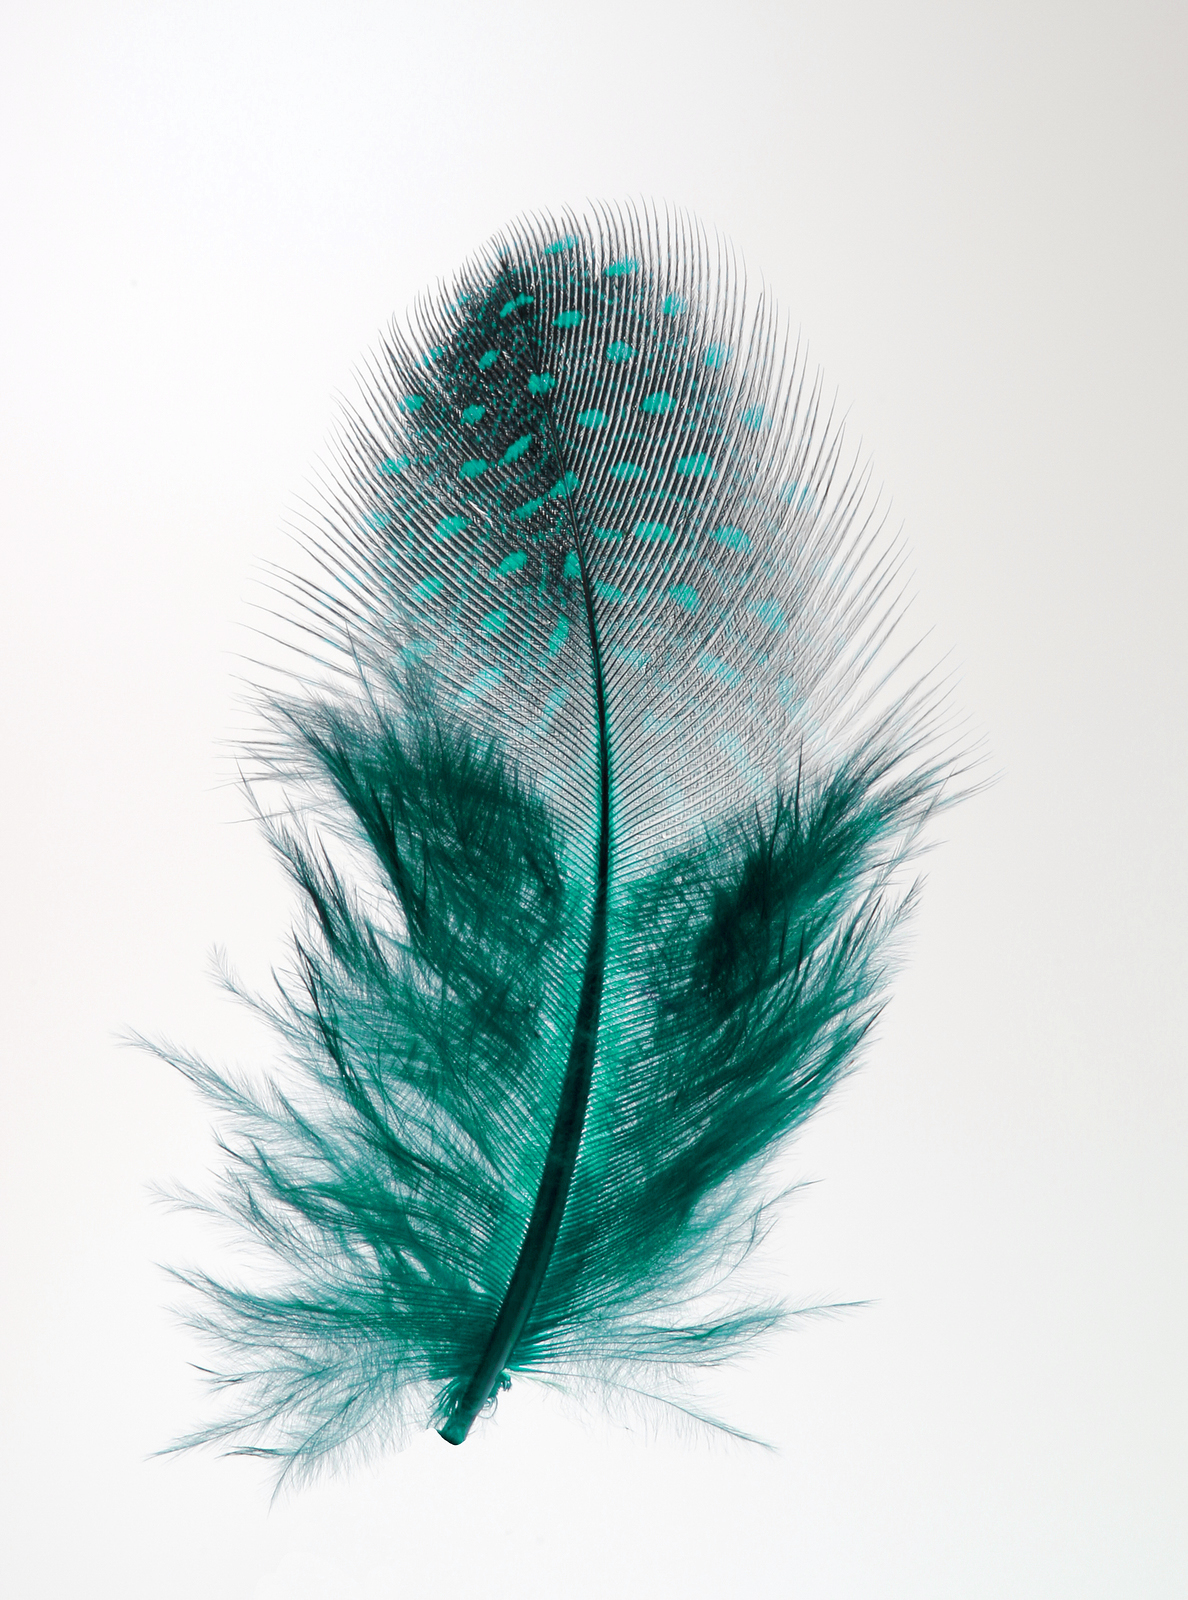 Teal feather image